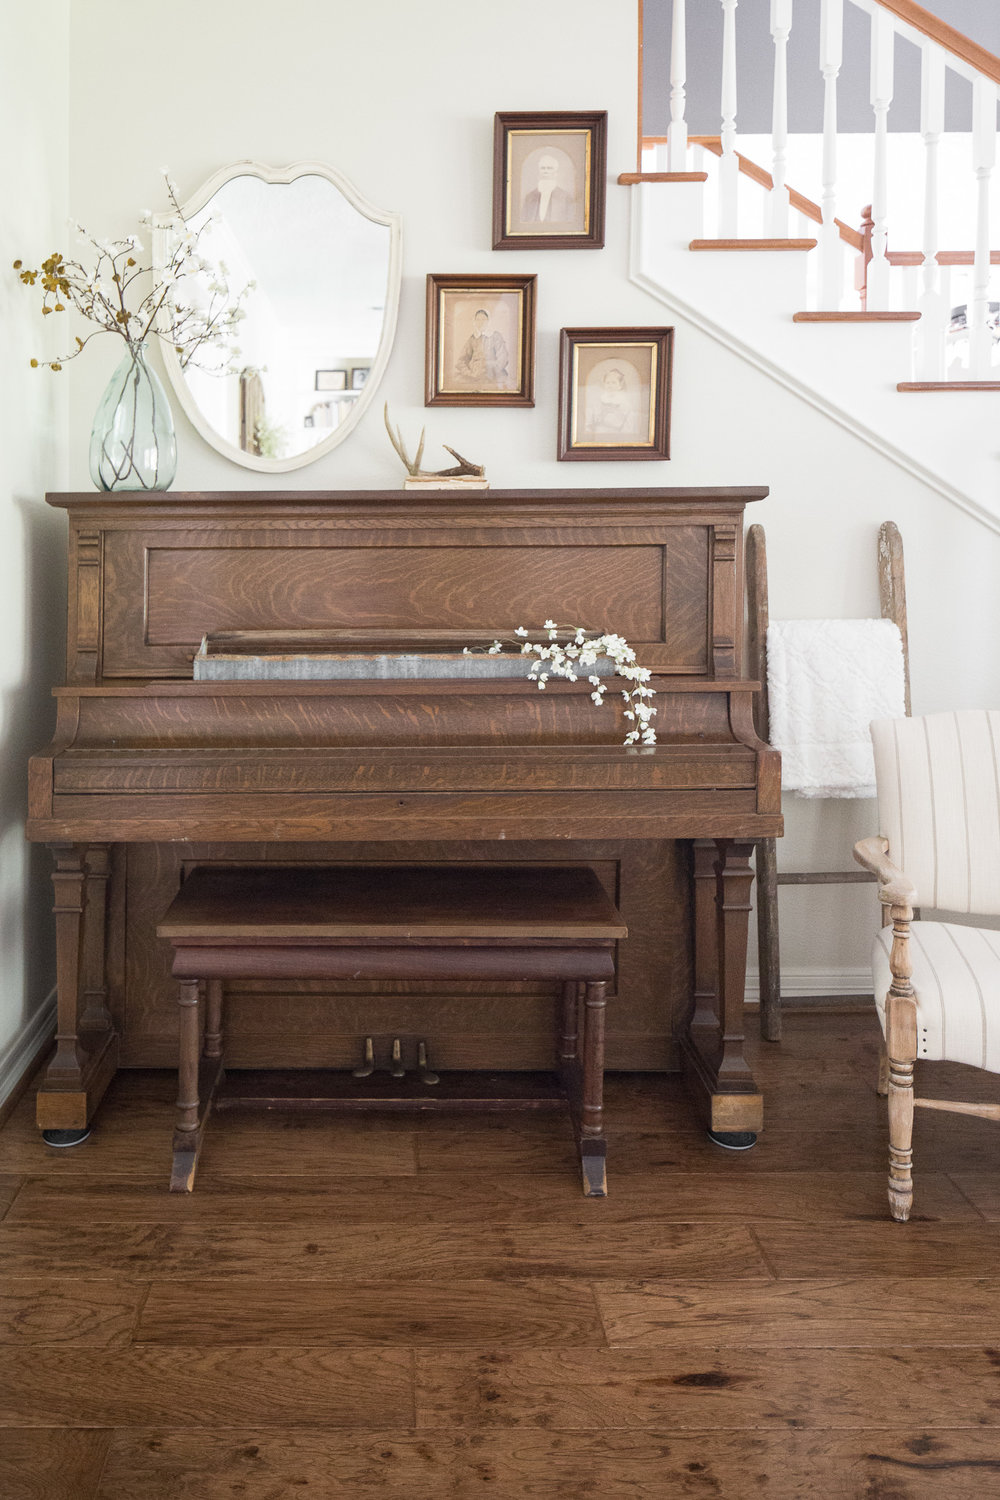 Moore House Interiors Piano Styling.jpg